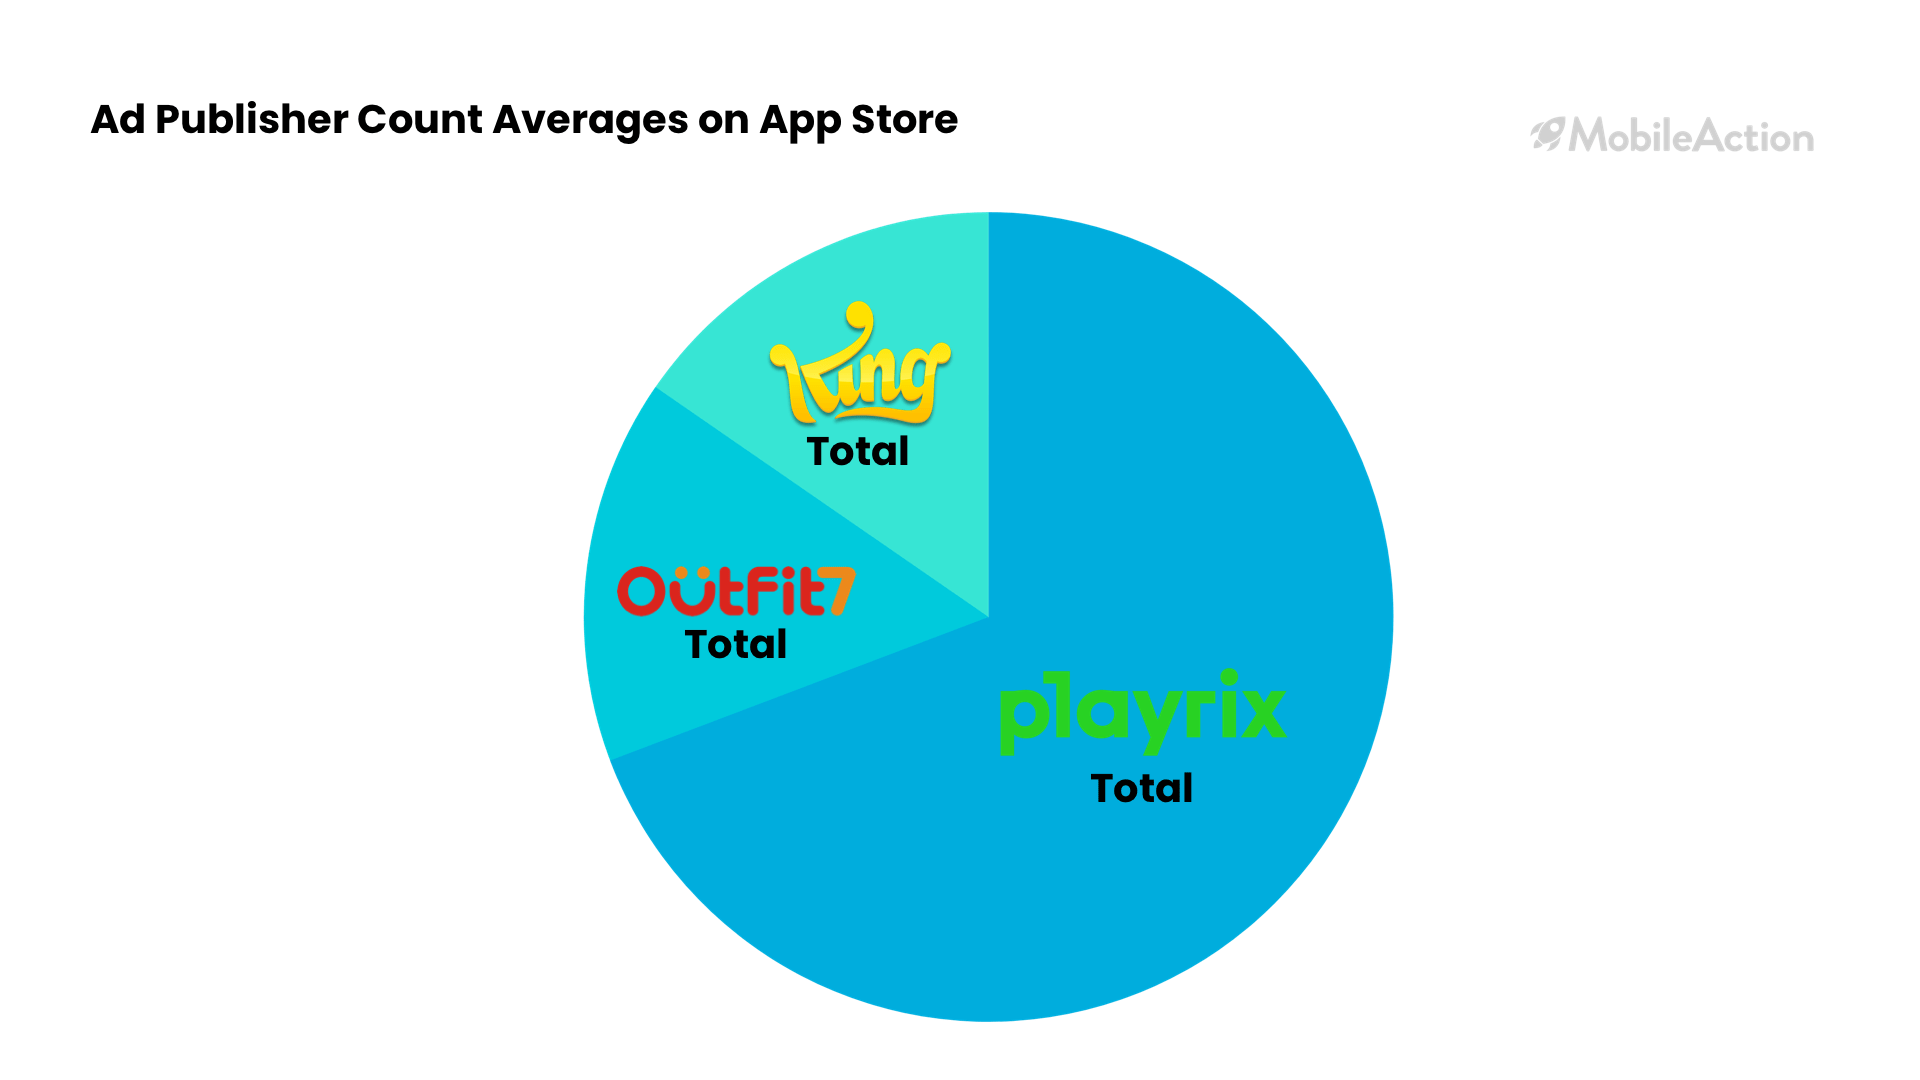 ad publisher count averages on ios app store